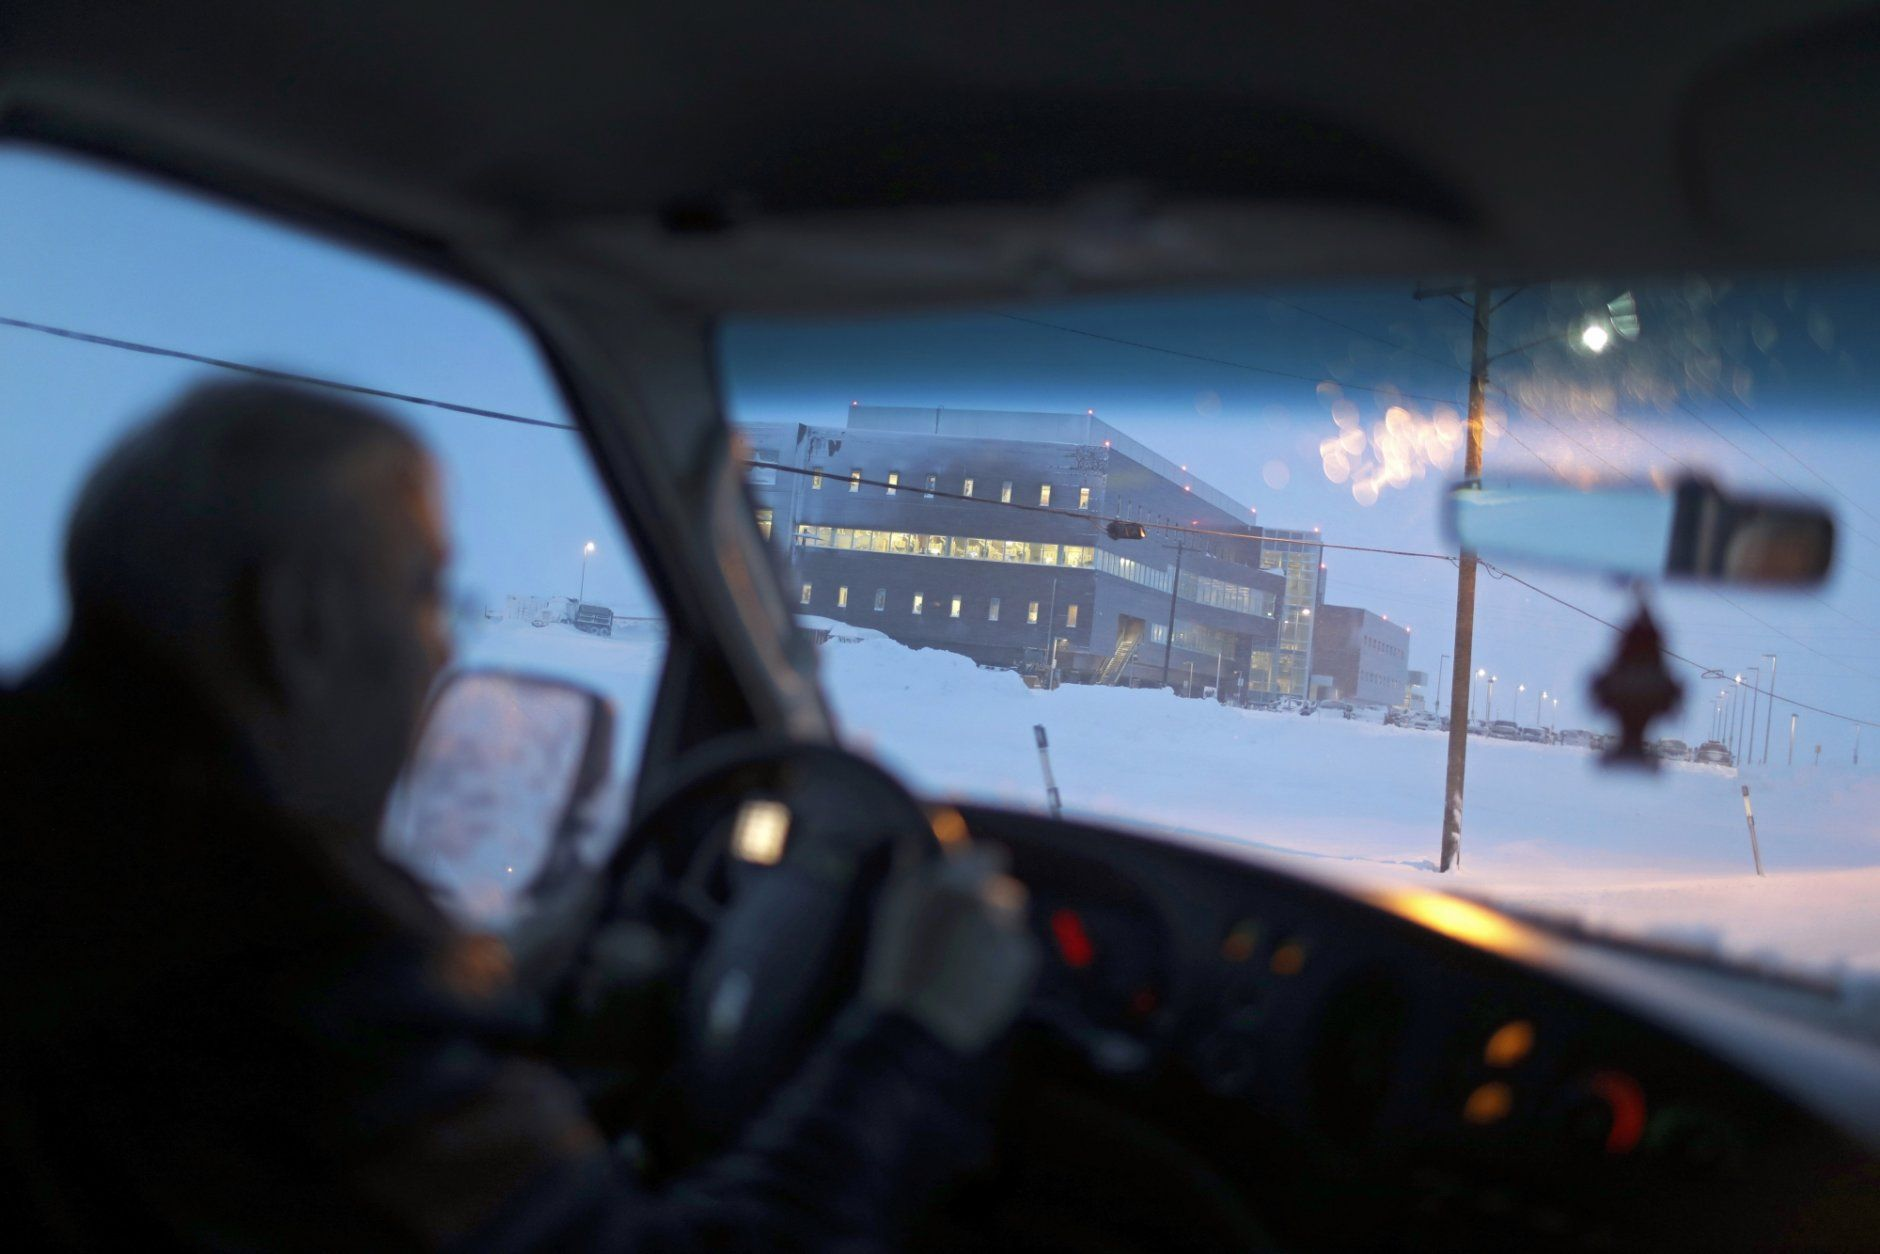 In this Feb. 21, 2019, photo, the Norton Sound Regional Hospital is seen through a taxi windshield during a storm in Nome, Alaska. The main hospital serving residents in the Bering Strait region is located about a mile from downtown Nome. (AP Photo/Wong Maye-E)